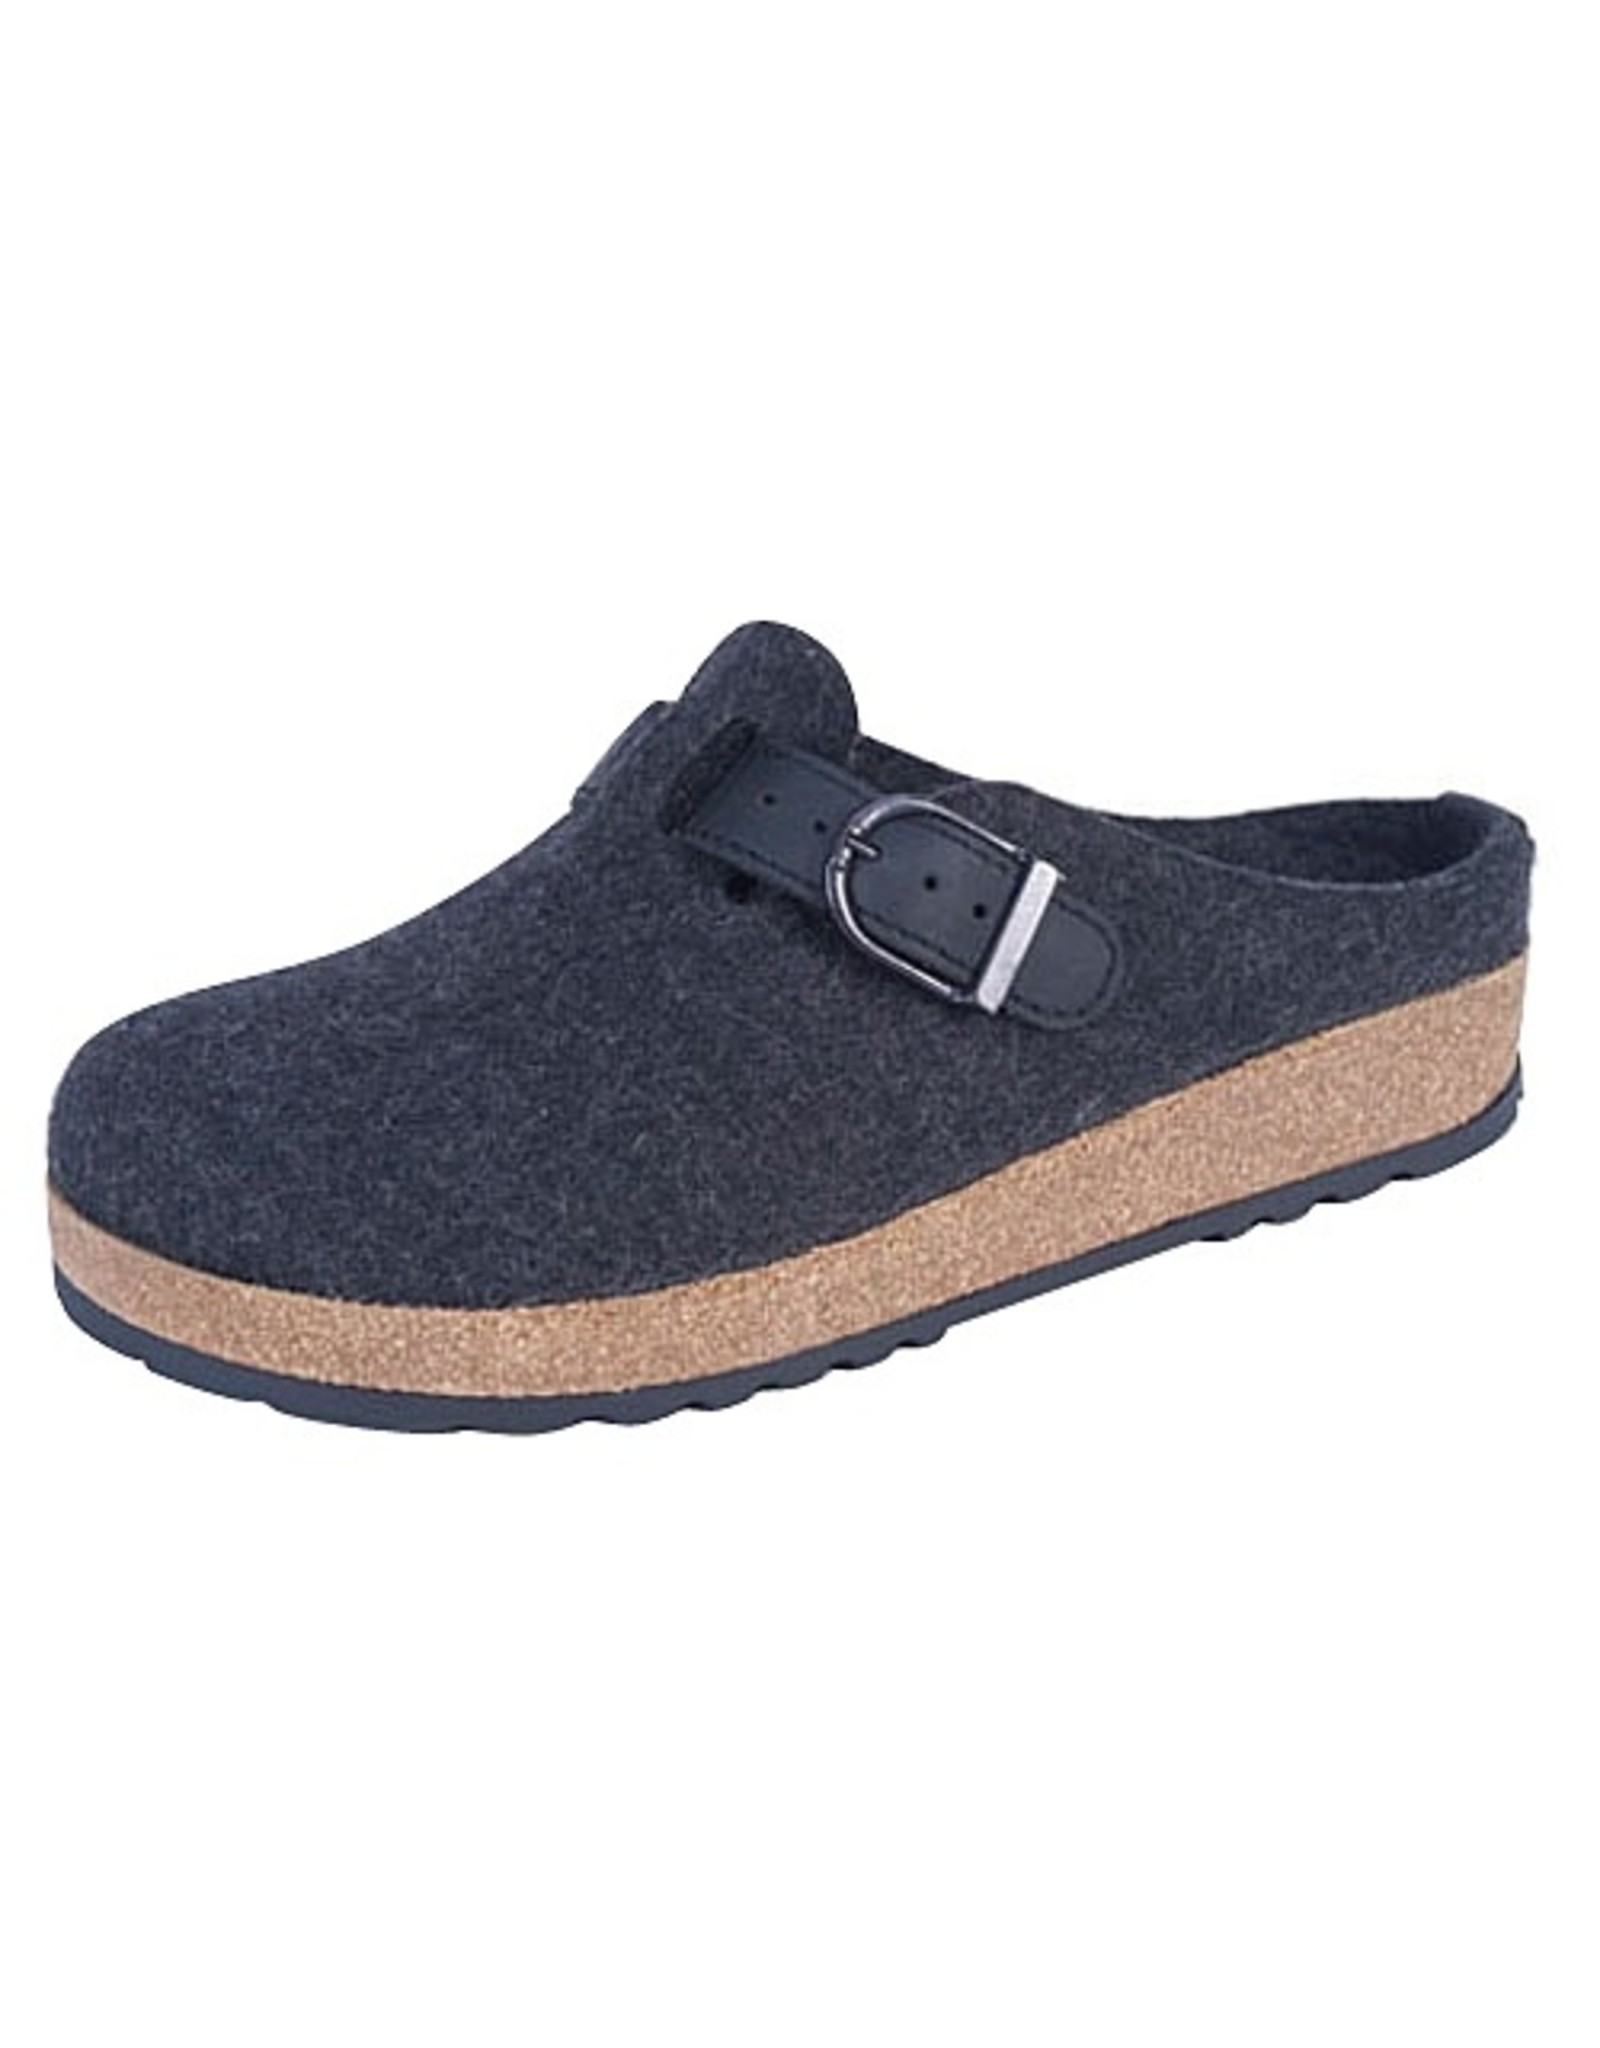 Wool Felt Grizzy Buckle Clog